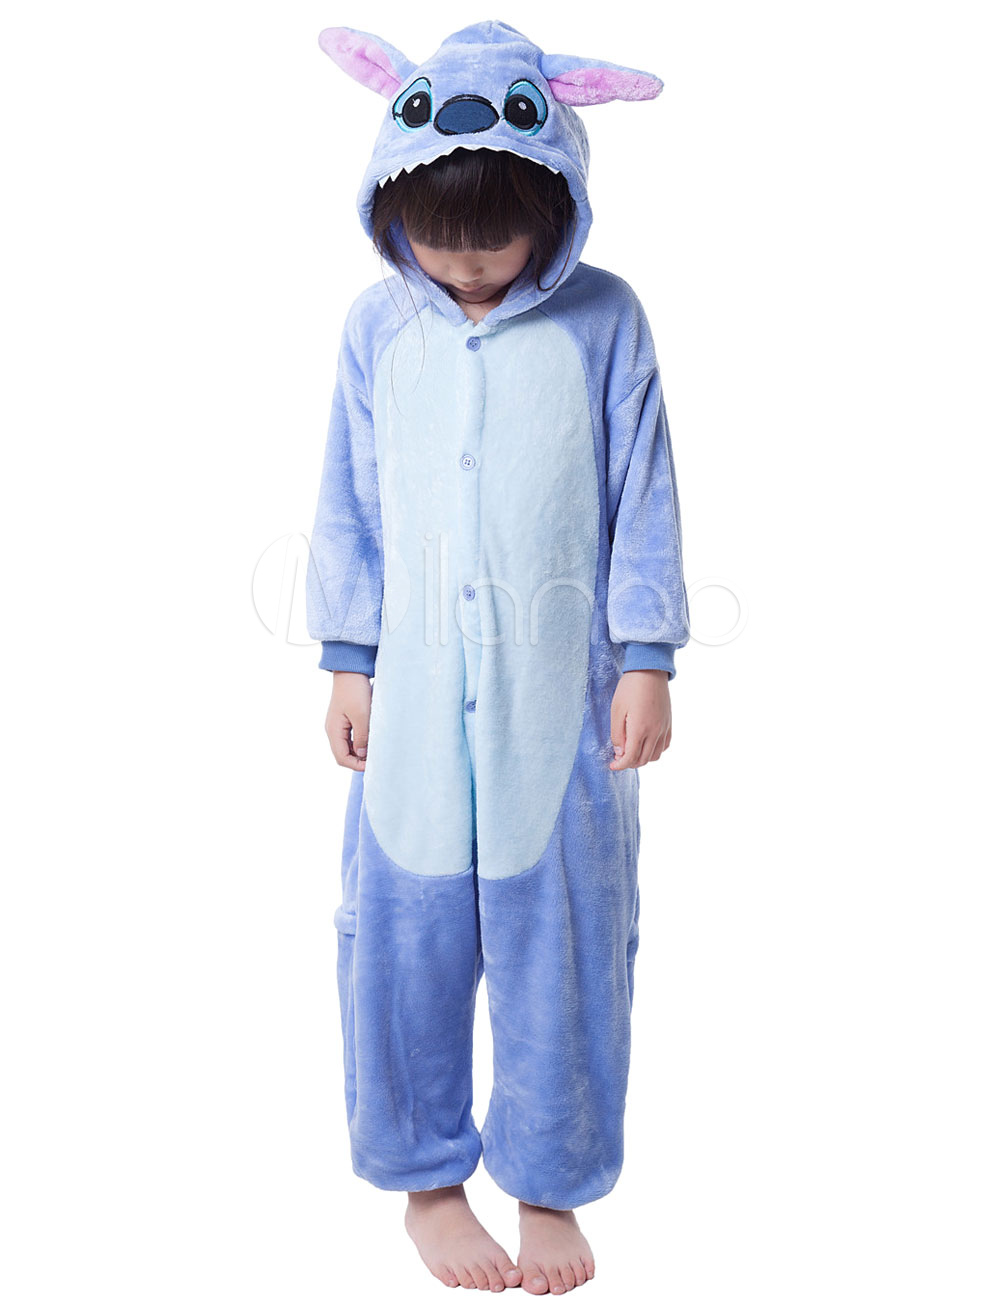 Buy Kigurumi Pajama Stitch Onesie For Kids Blue Synthetic Jumpsuit Christmas Mascot Costume Halloween for $18.89 in Milanoo store